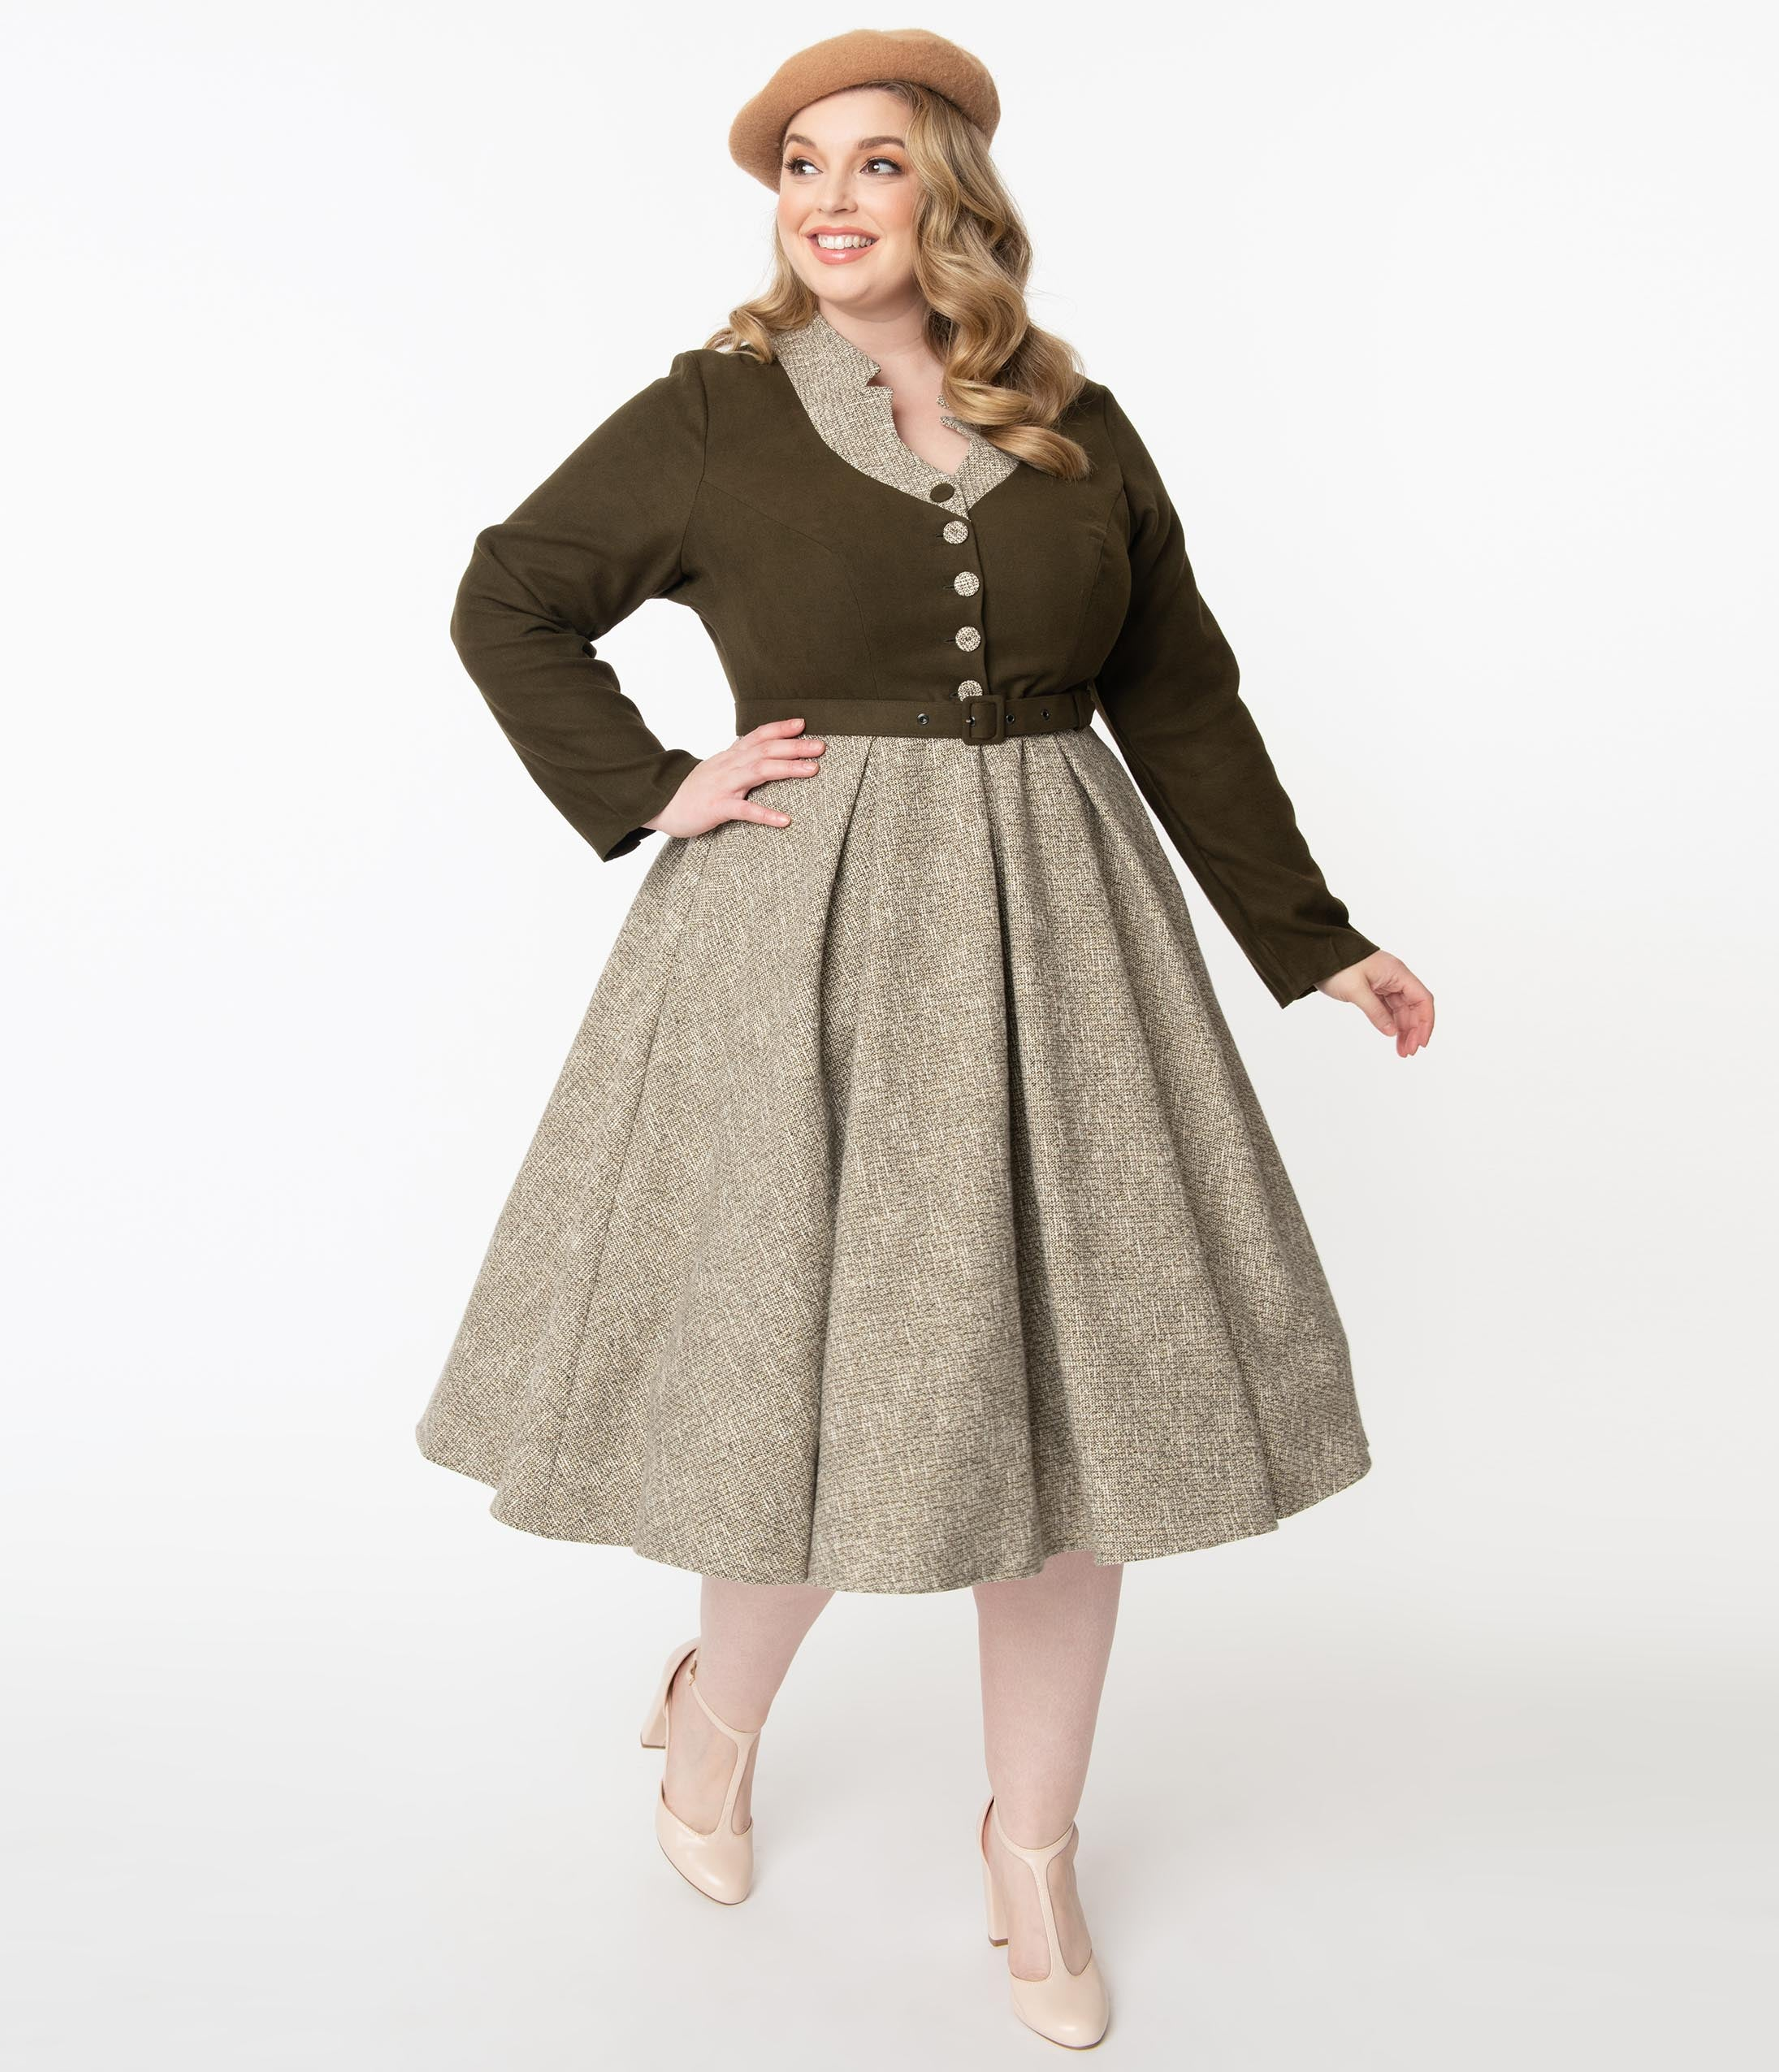 Plus Size Swing Dresses, Vintage Dresses Miss Candyfloss Plus Size 1950S Forest Green  Sand Tamrika Swing Dress $168.00 AT vintagedancer.com